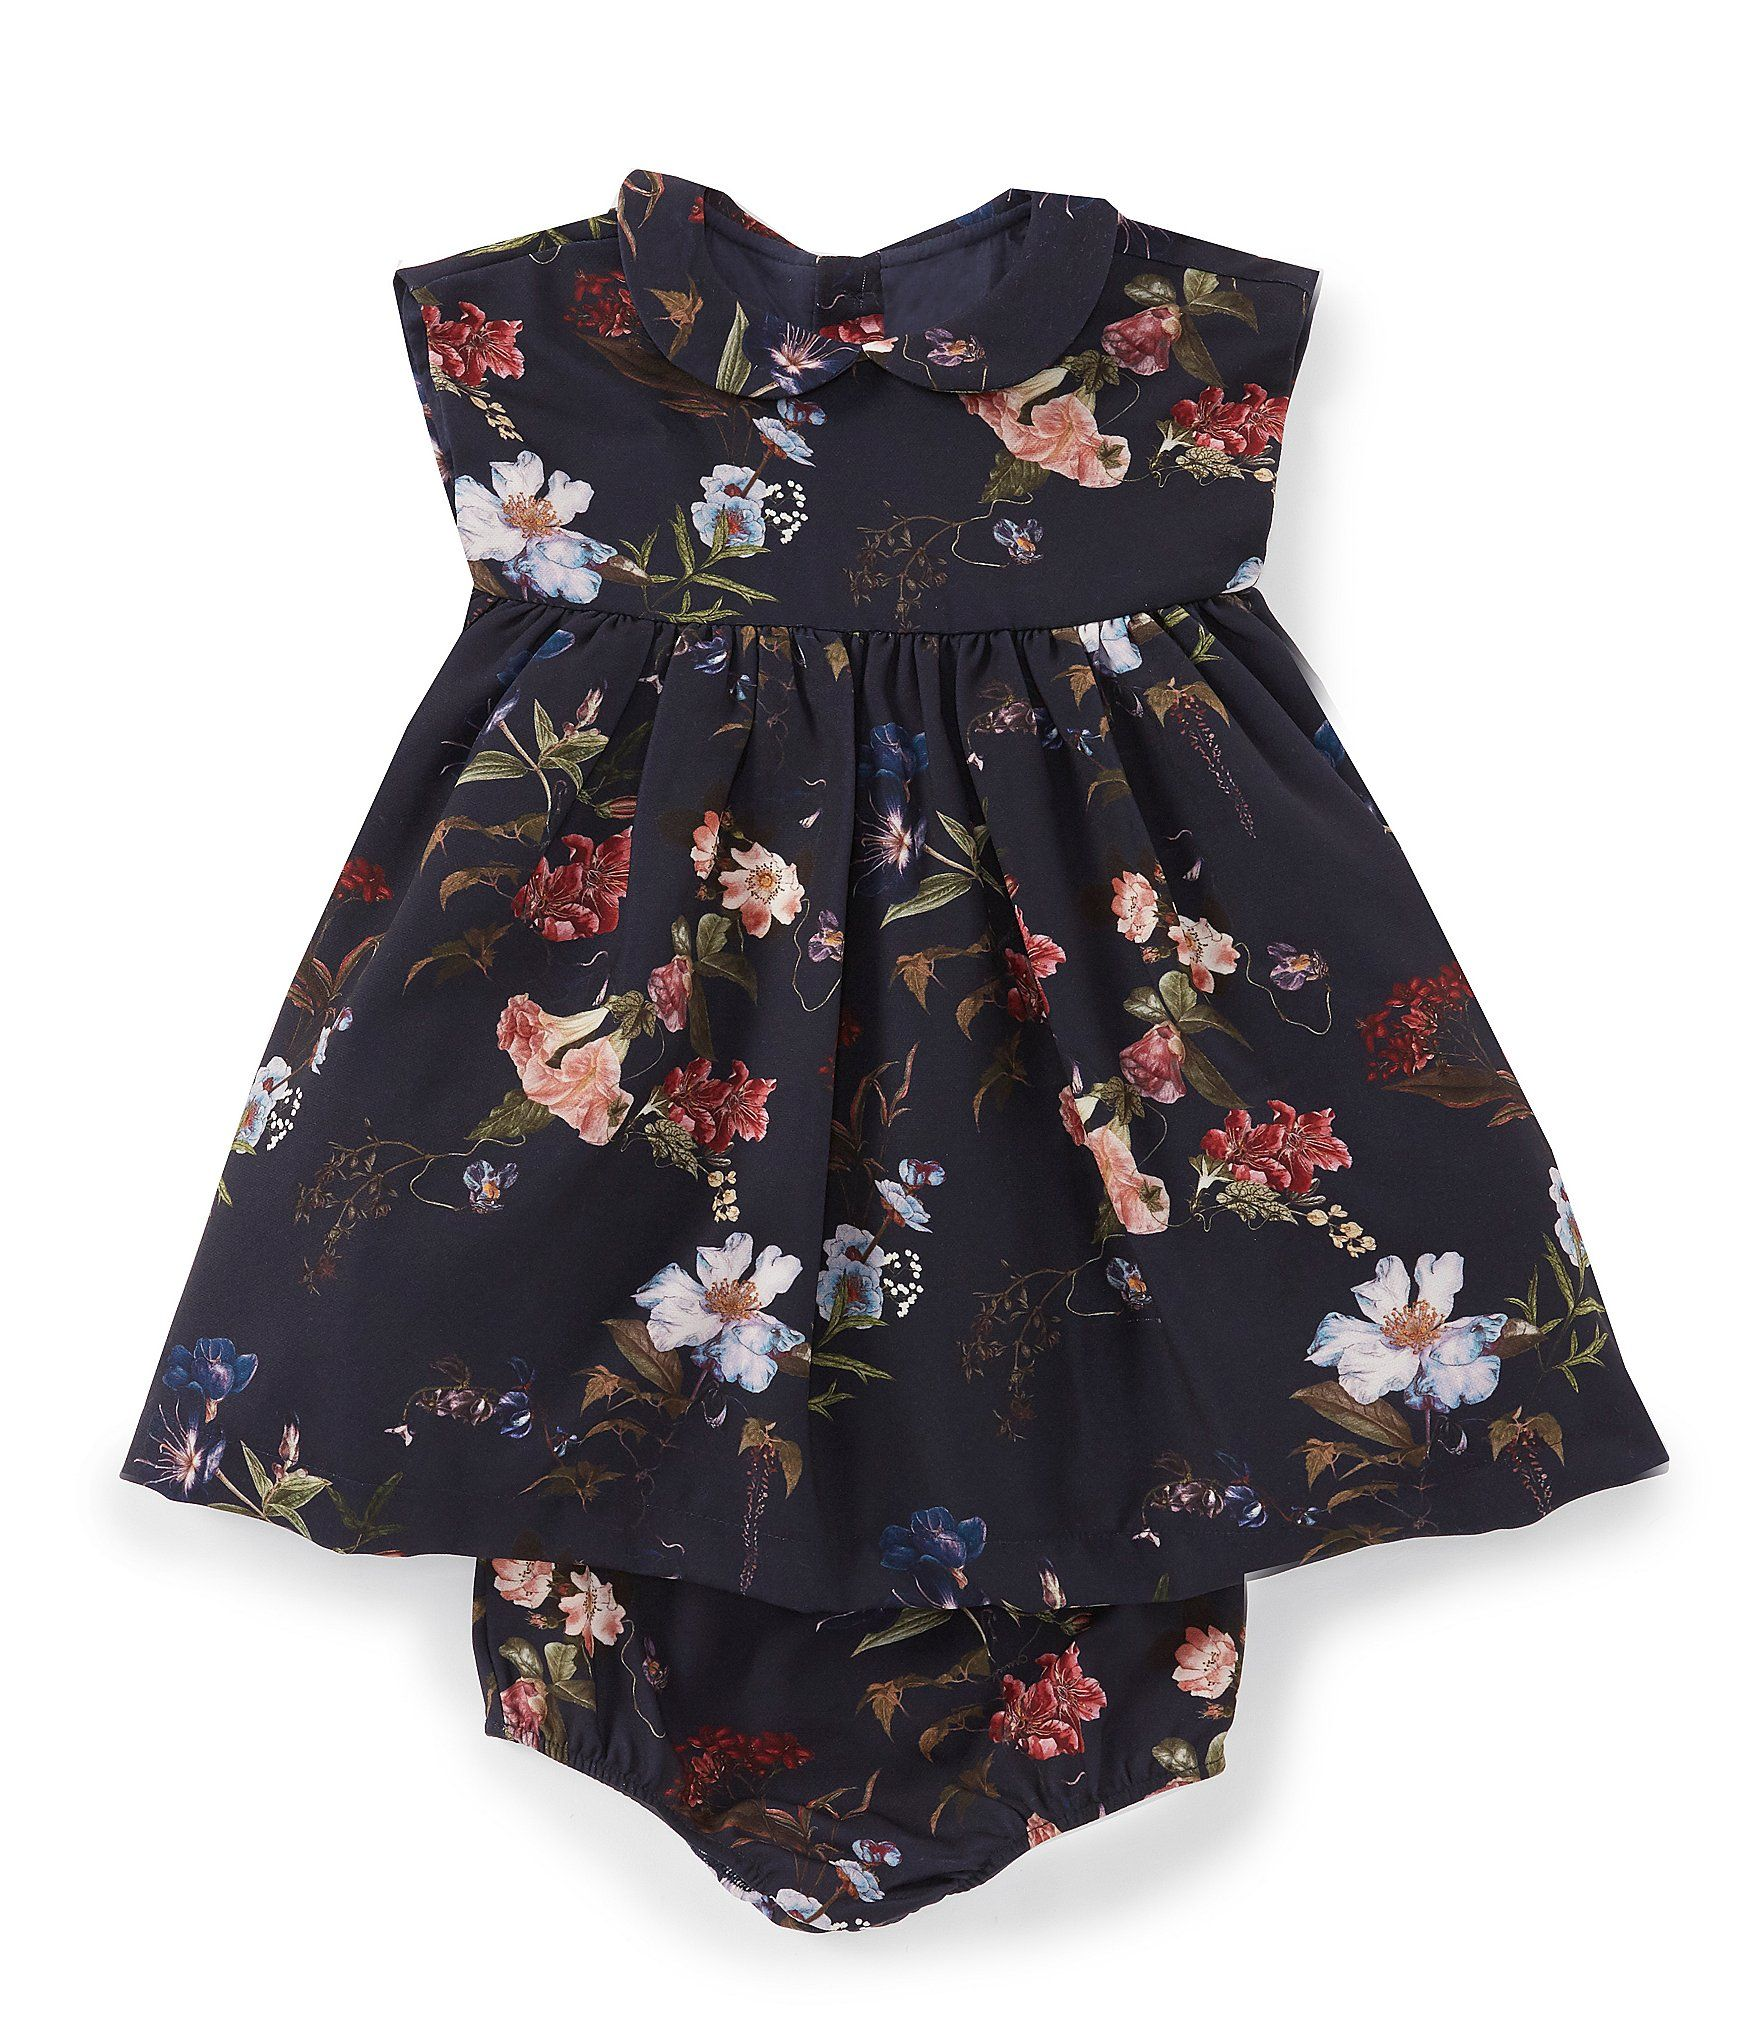 d6913c7e45 Shop for Edgehill Collection Baby Girls 12-24 Months Mommy   Me Romano Floral  Dress at Dillards.com. Visit Dillards.com to find clothing